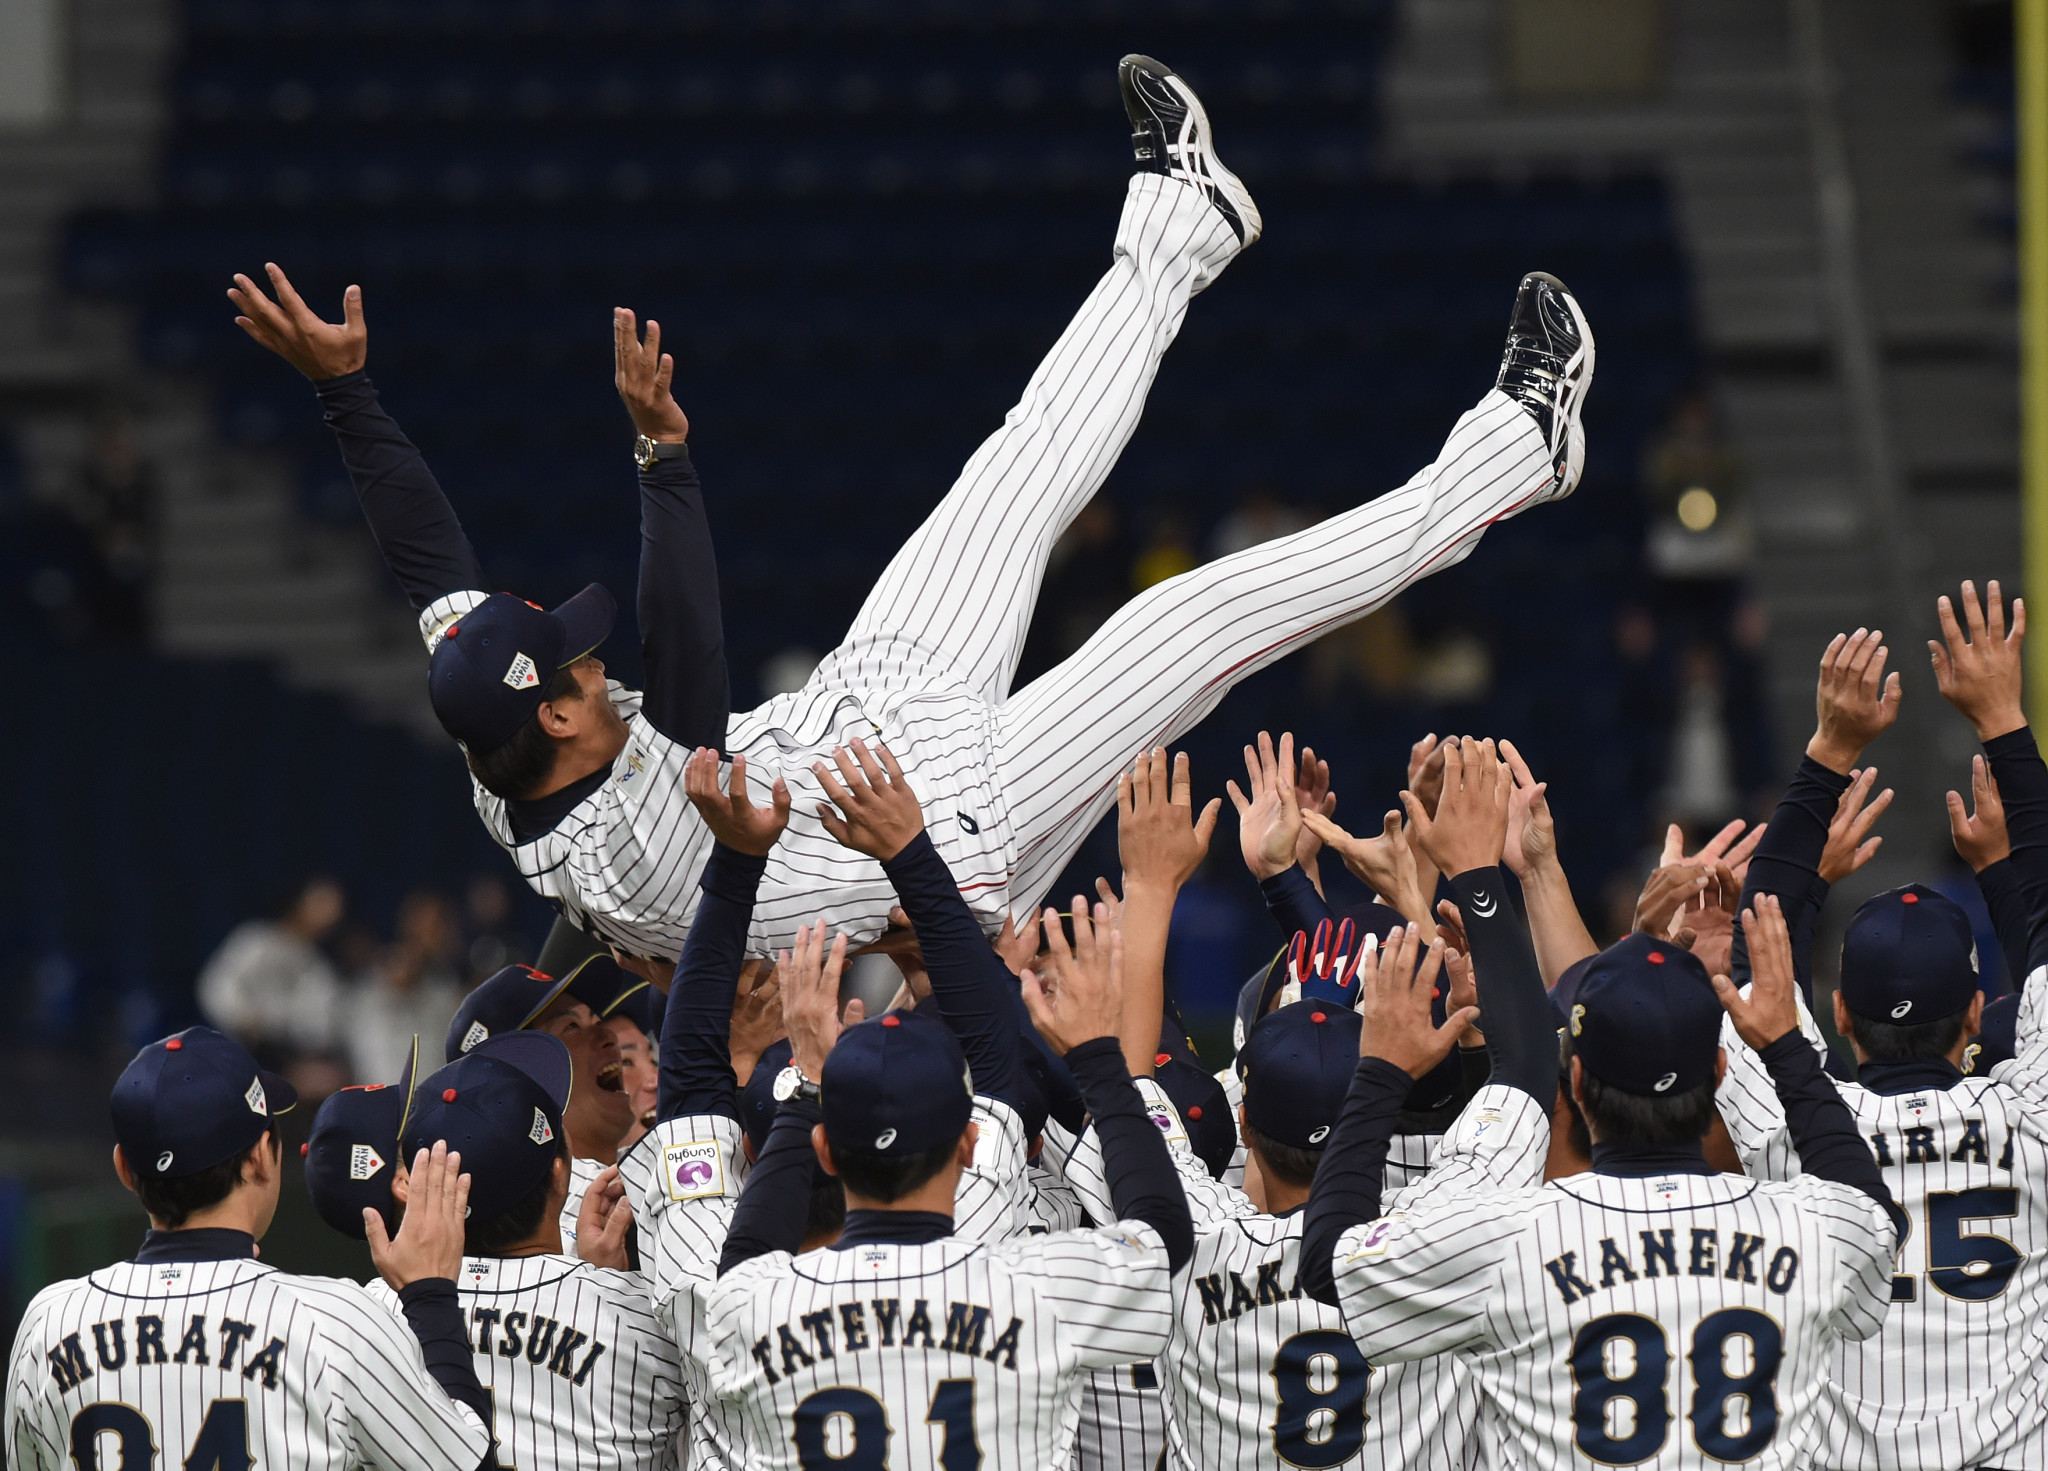 Japan baseball manager Inaba has contract extended to include Tokyo 2020